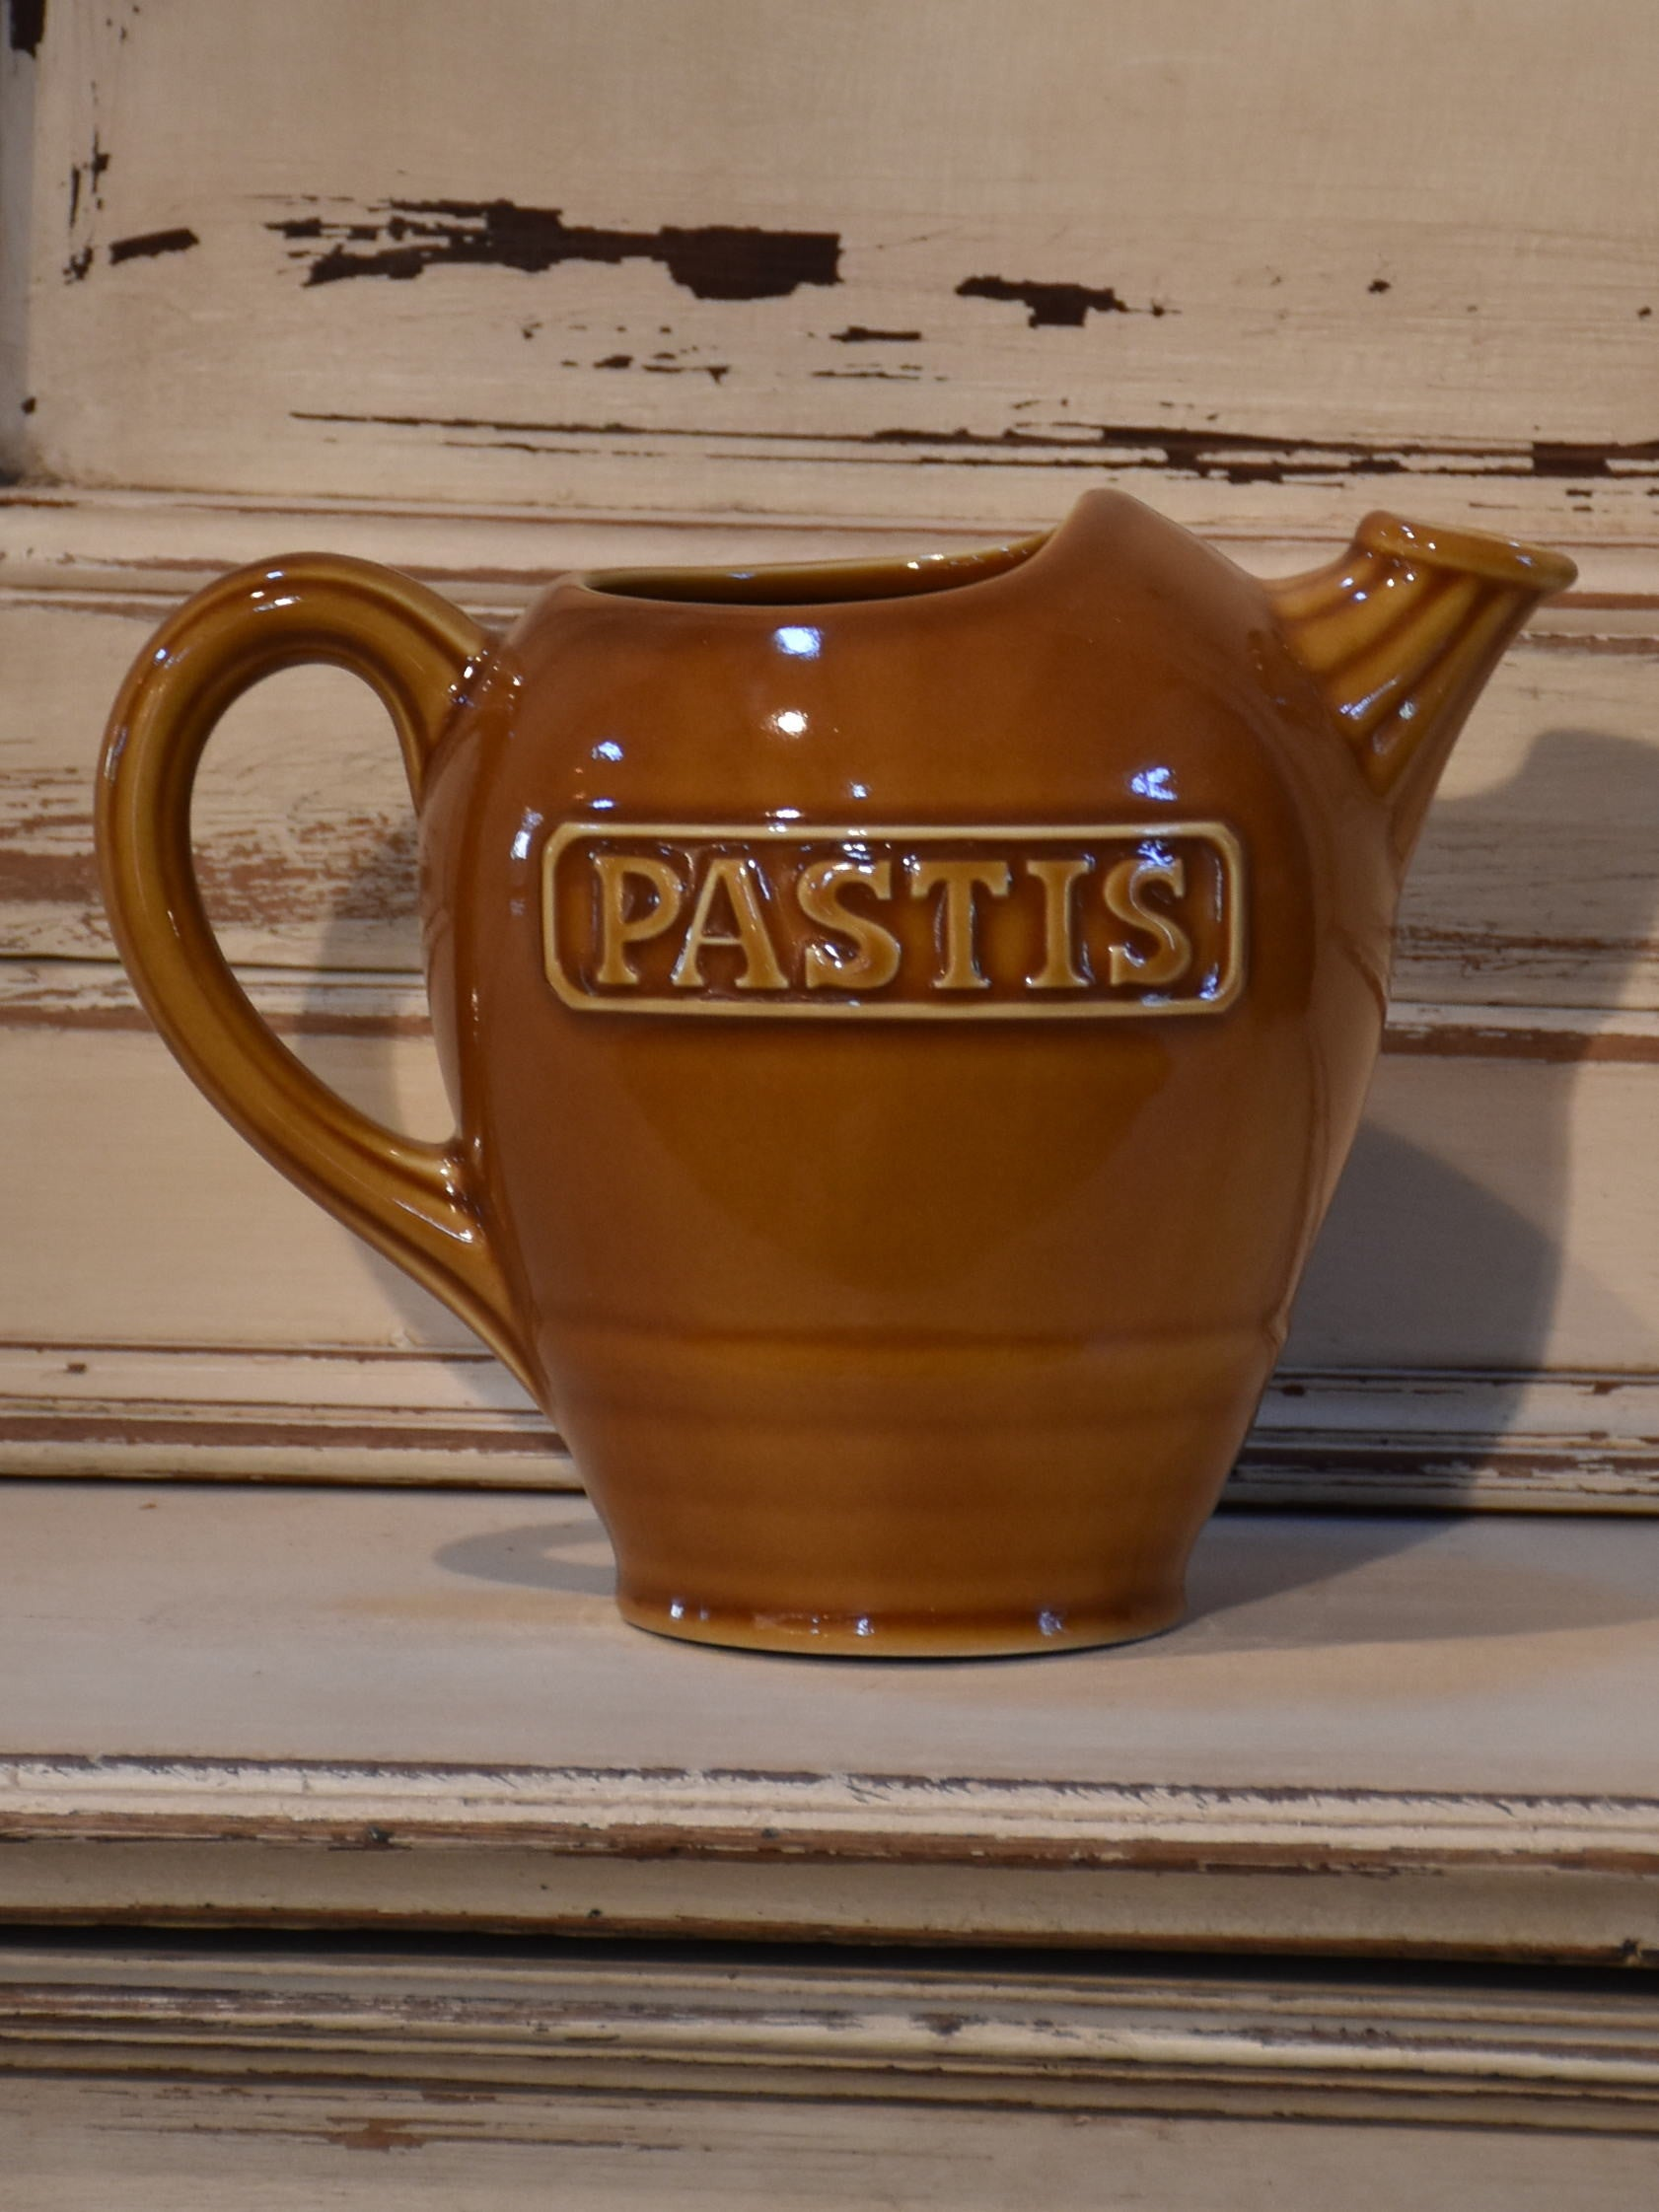 Vintage French pastis water pitcher